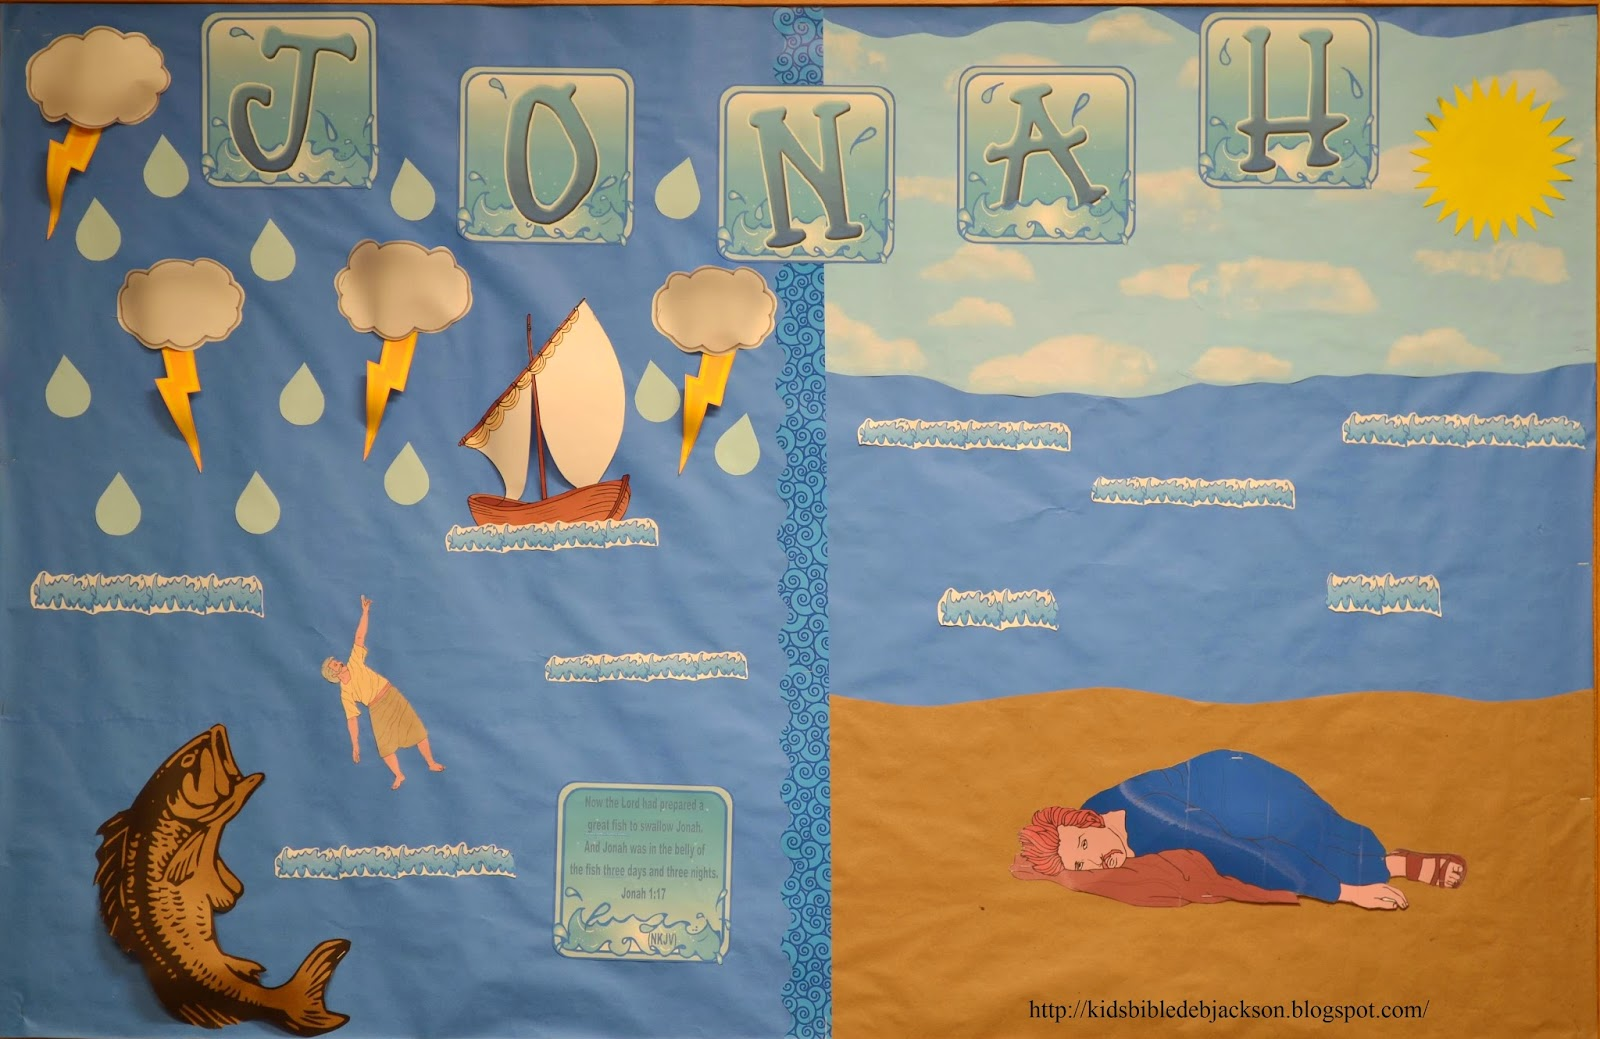 http://kidsbibledebjackson.blogspot.com/2014/02/old-testament-bulletin-boards-part-2.html